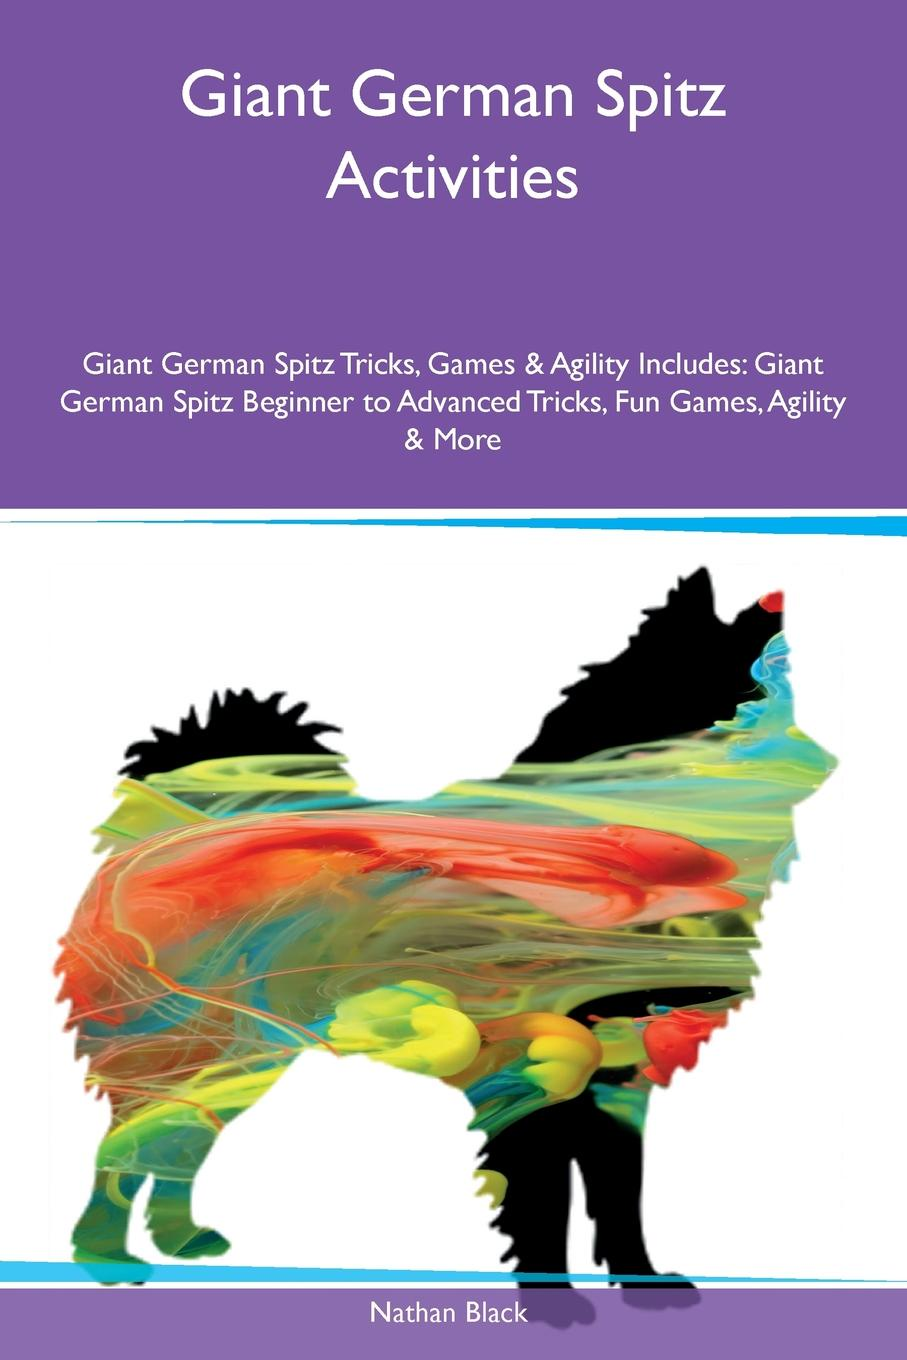 Nathan Black Giant German Spitz Activities Giant German Spitz Tricks, Games & Agility Includes. Giant German Spitz Beginner to Advanced Tricks, Fun Games, Agility & More цена